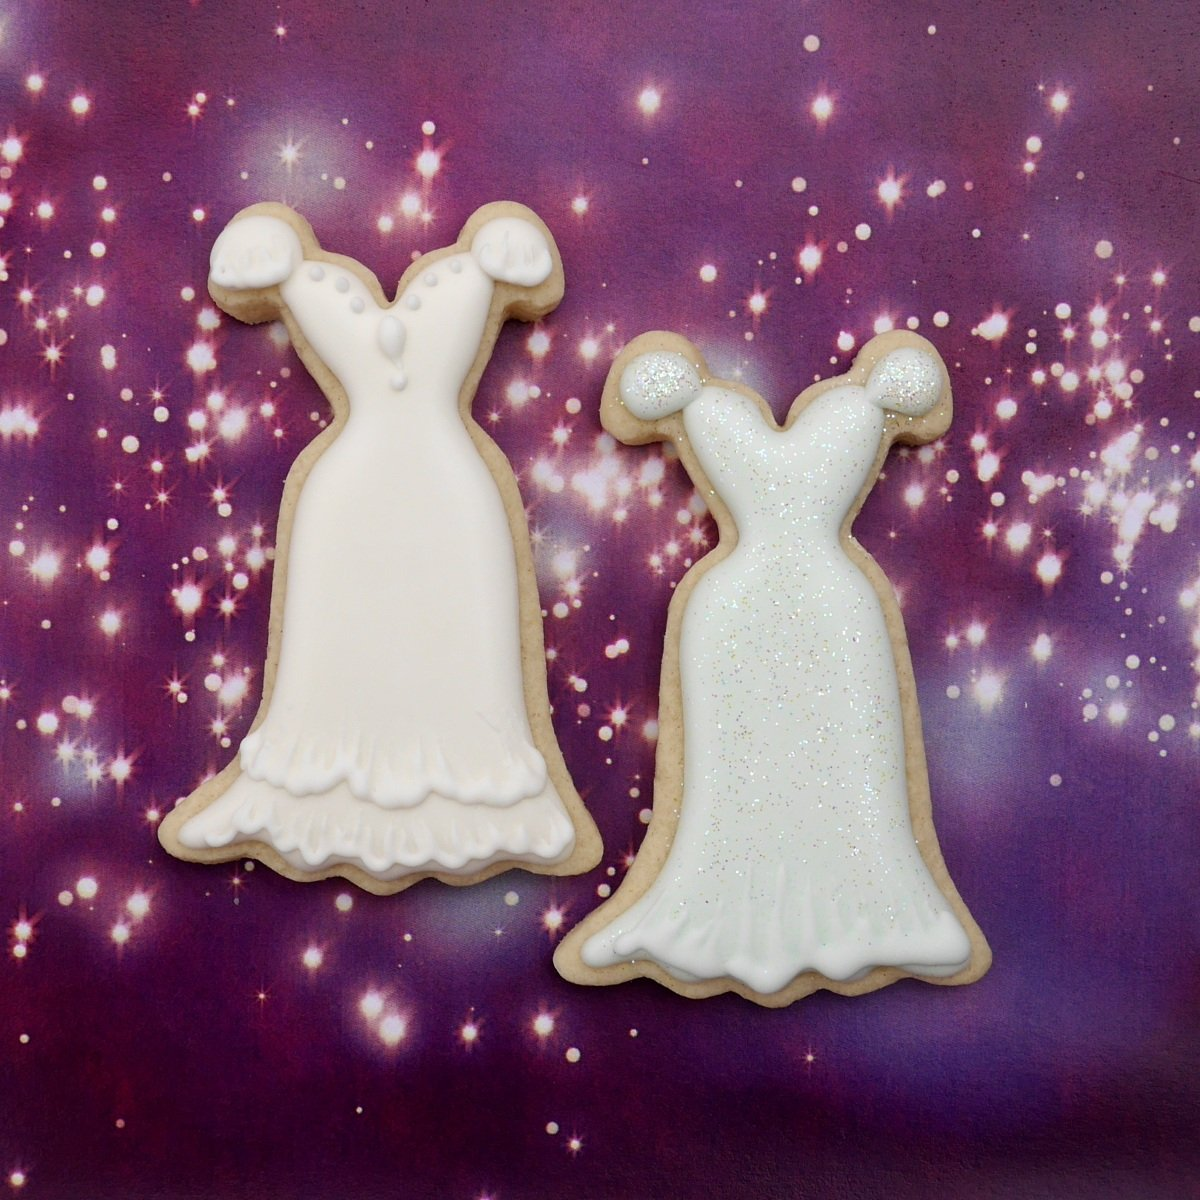 Princess Kingdom Cookie Cutter Set - 10 Piece Stainless Steel by Sweet Cookie Crumbs (Image #7)